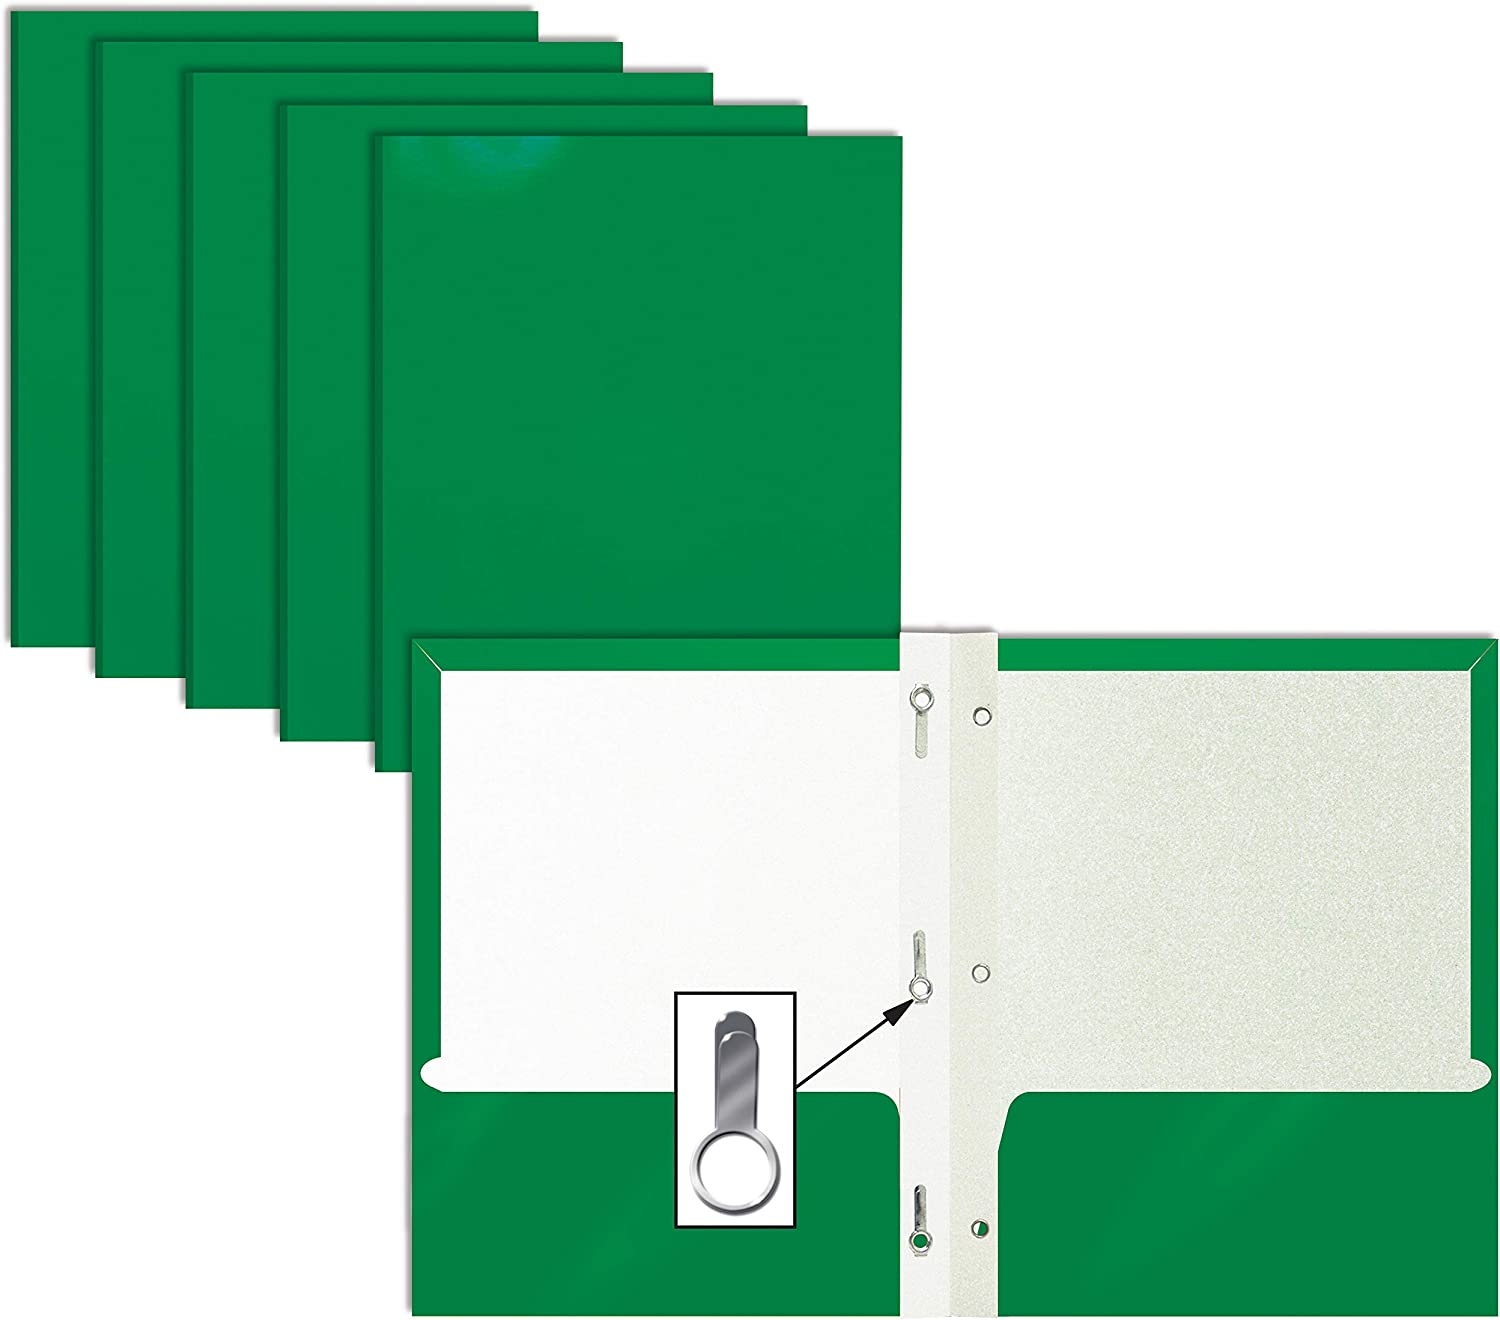 2 Pocket Glossy Green Paper Folders with Prongs, 25 Pack, by Better Office Products, Letter Size, High Gloss Green Paper Portfolios with 3 Metal Prong Fasteners, Box of 25 Glossy Green Folders